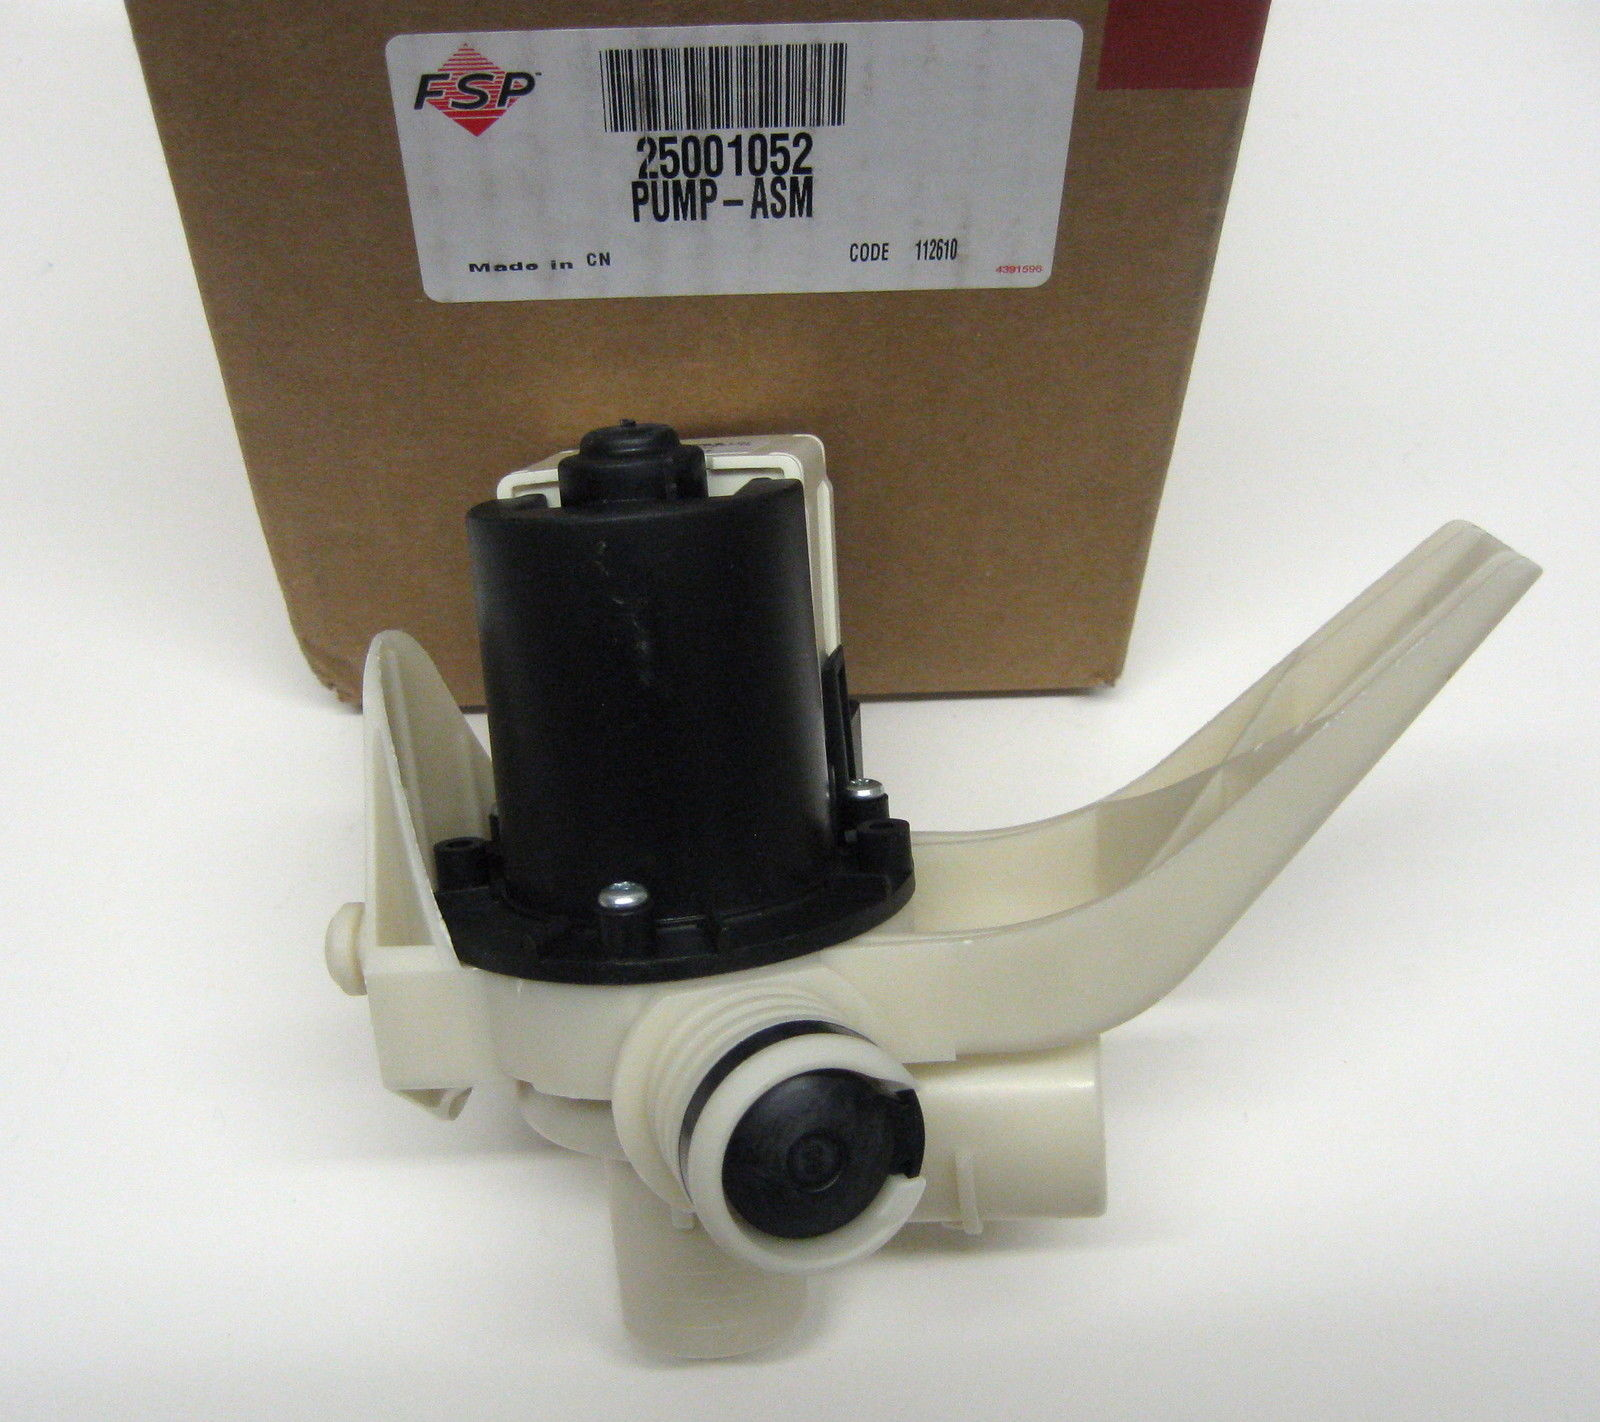 Wp25001052 Whirlpool Maytag Washer Water Drain Pump Motor